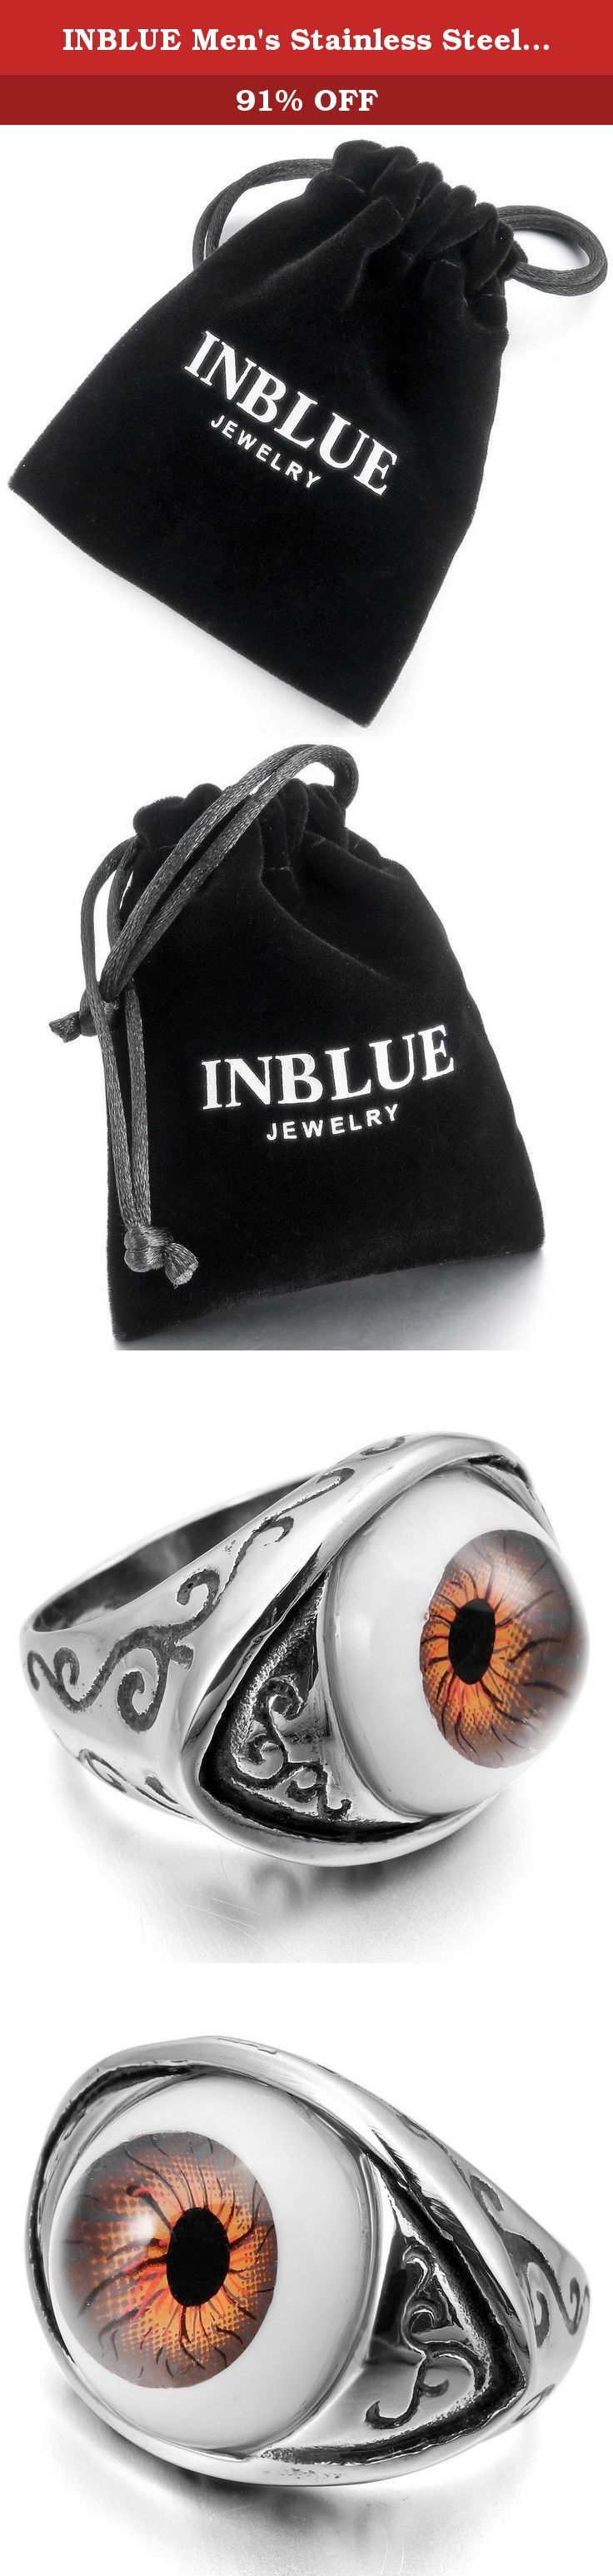 INBLUE Men's Stainless Steel Ring Silver Tone Brown Black Evil Devil Eye Size14. INBLUE - High quality Jewelry Discover the INBLUE Collection of jewelry. The selection of high-quality jewelry featured in the INBLUE Collection offers Great values at affordable Price, they mainly made of high quality Stainless Steel, Tungsten, Silver and Leather. Find a special gift for a loved one or a beautiful piece that complements your personal style with jewelry from the INBLUE Collection. .